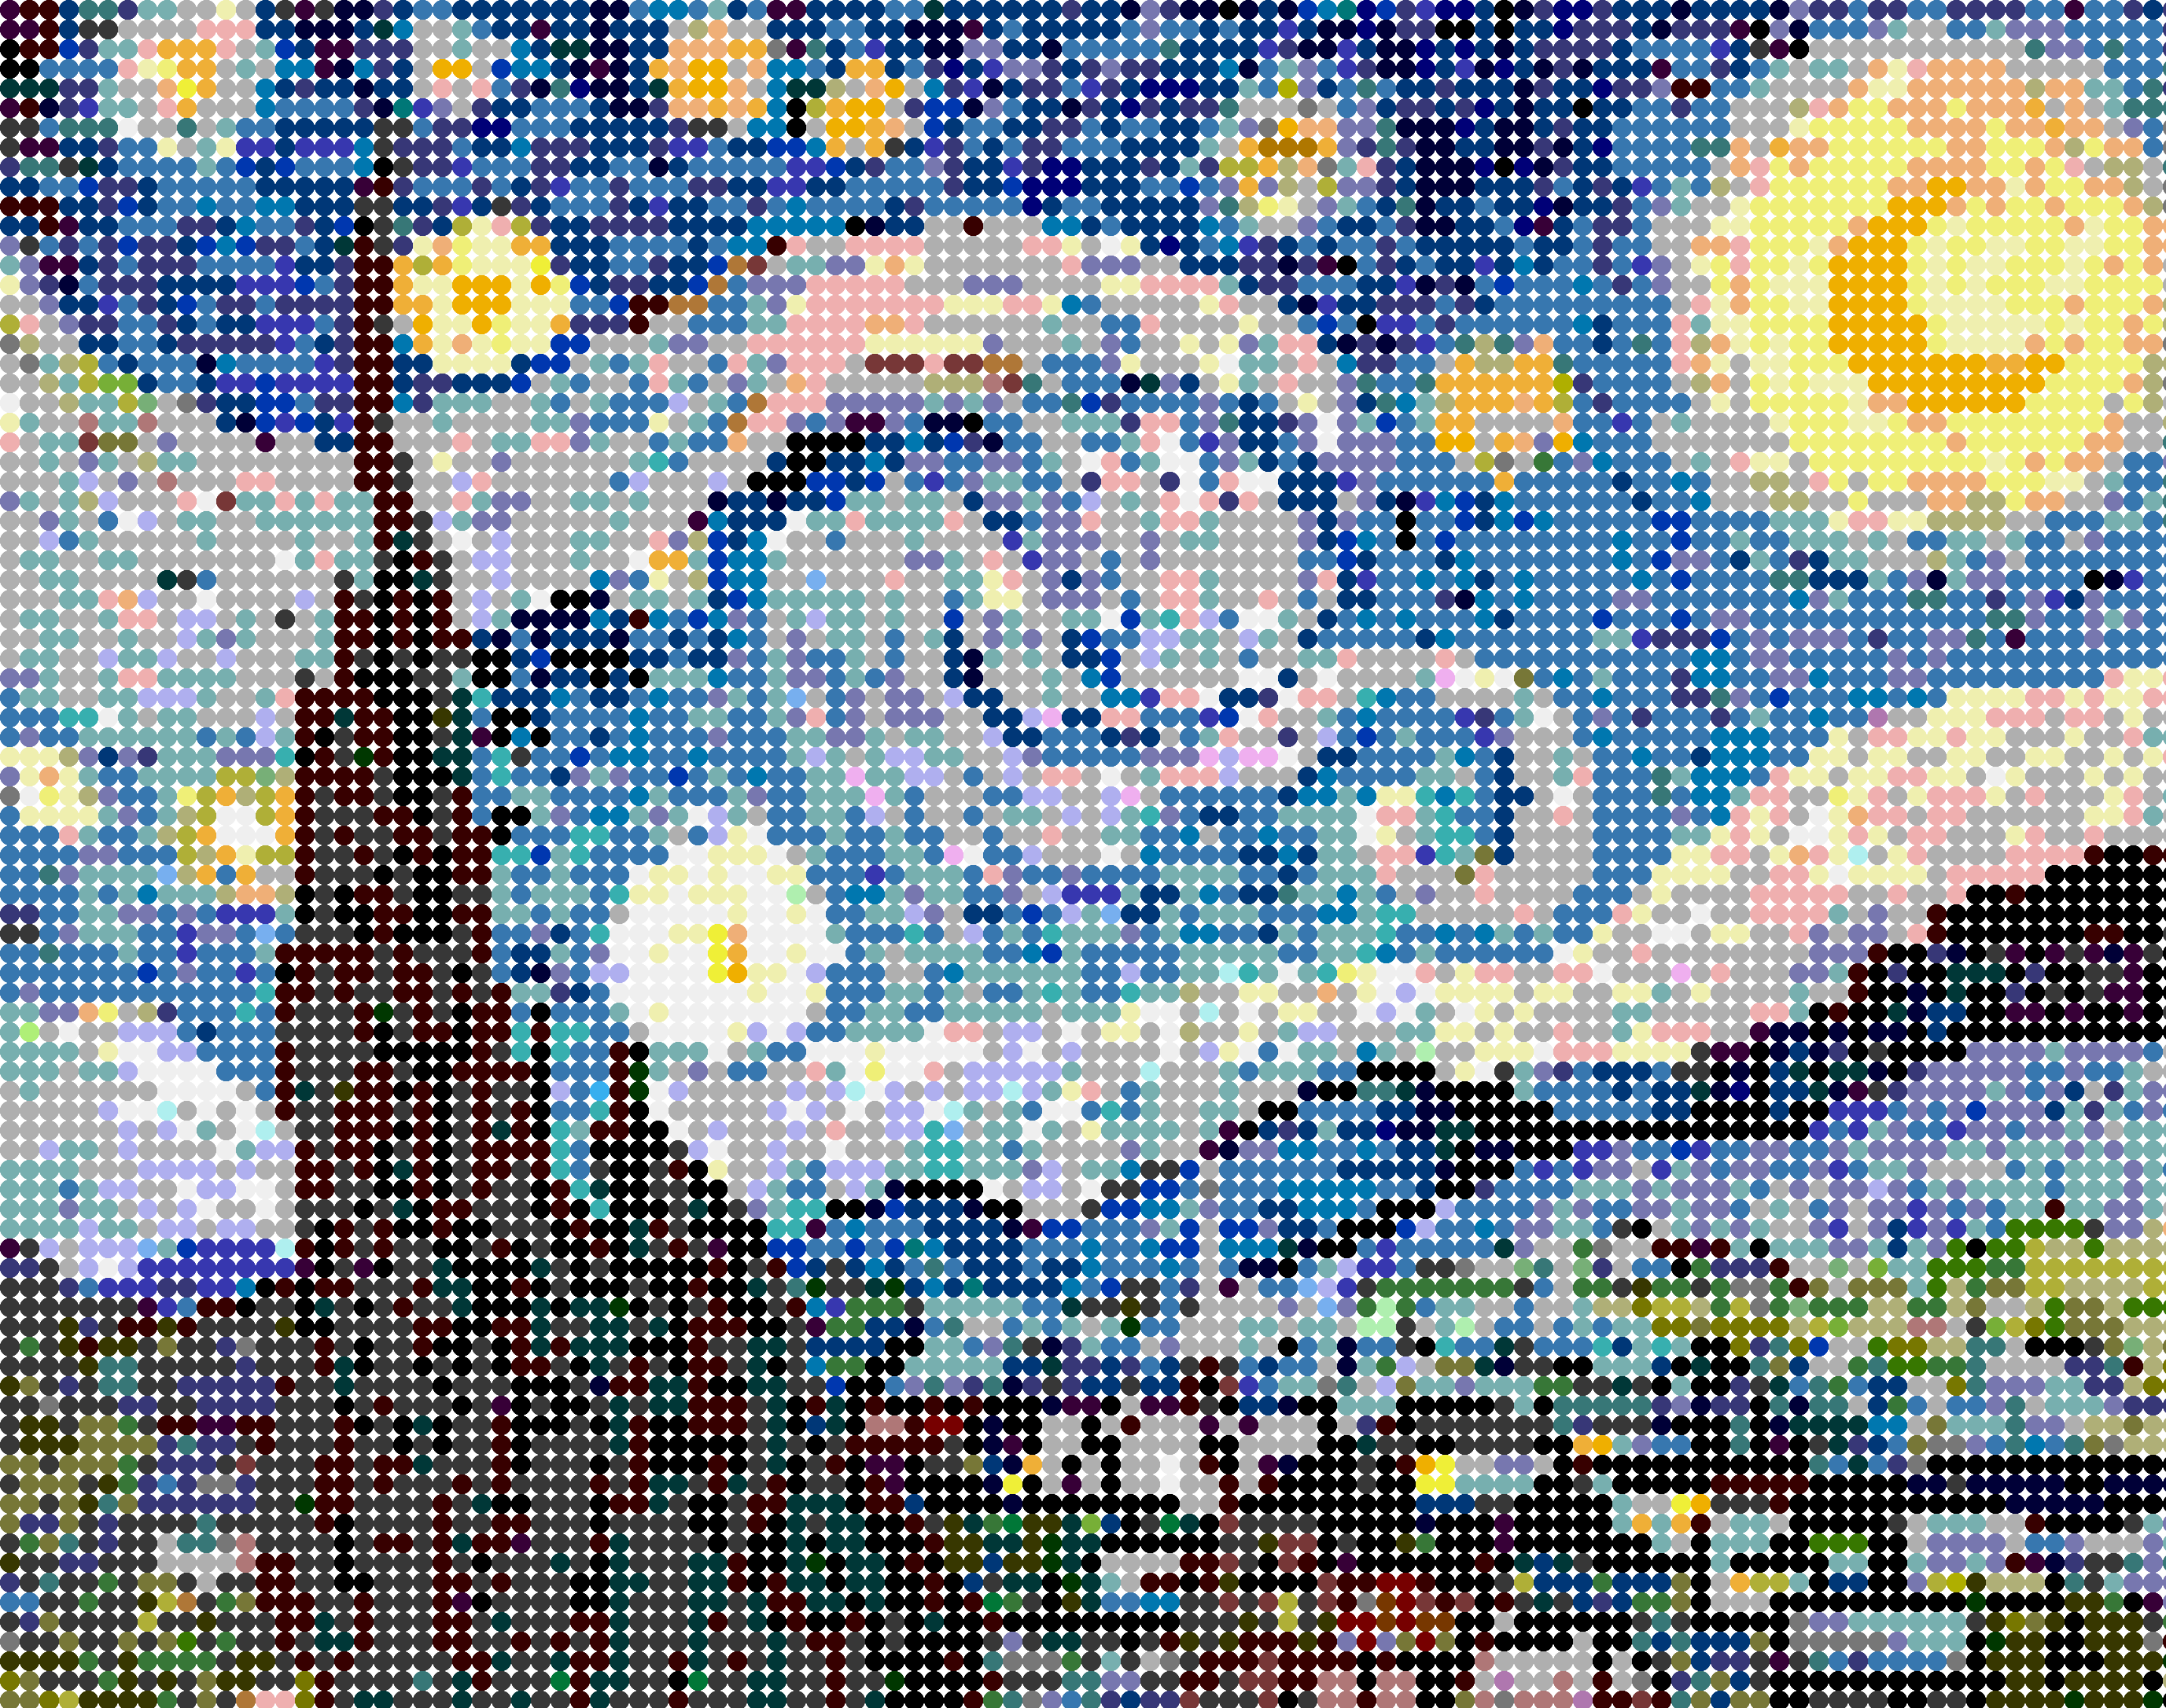 starry_night_circles_25x25